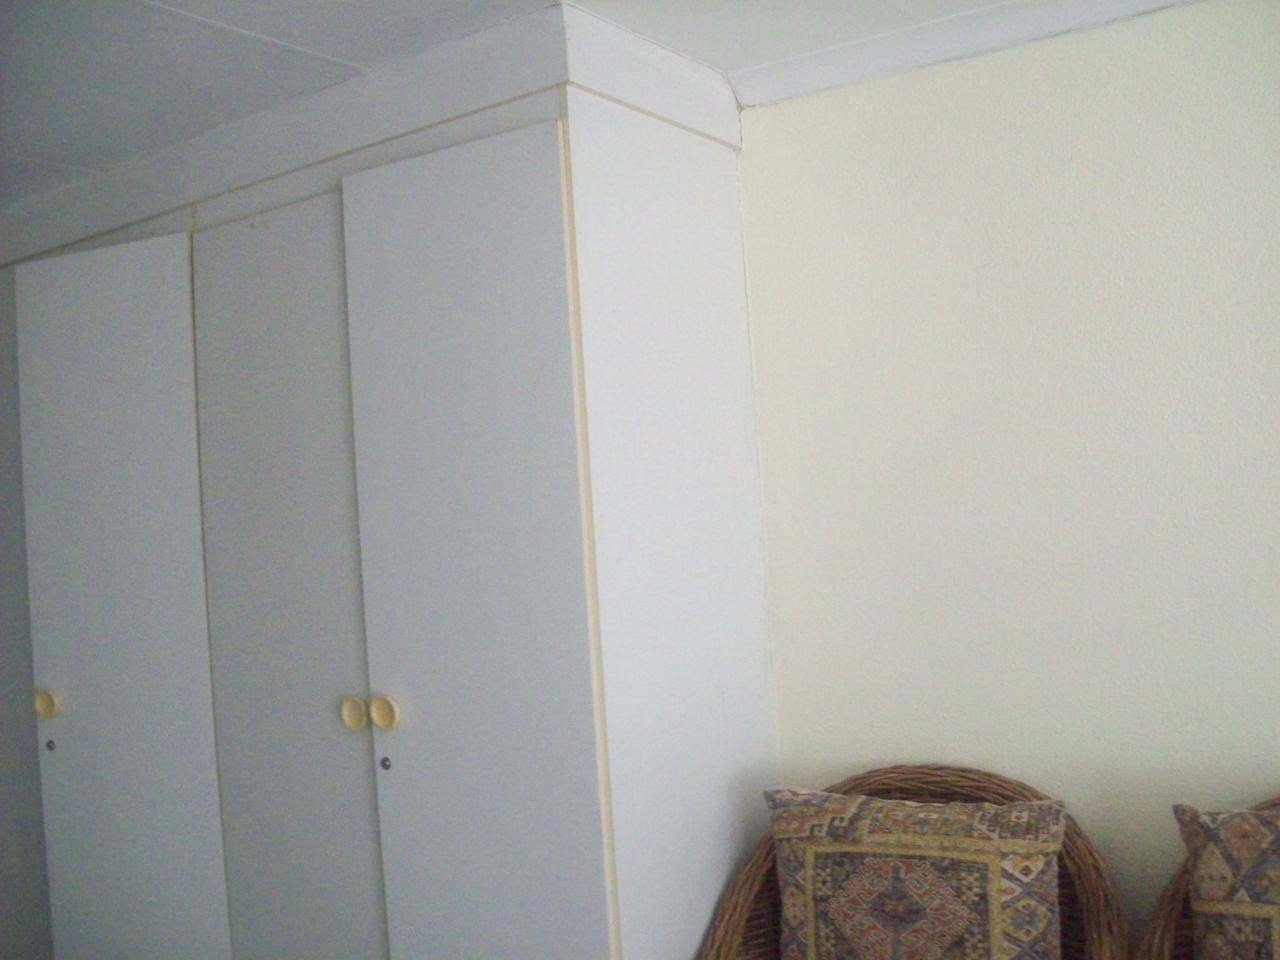 3 Bedroom Townhouse for sale in Bassonia ENT0071278 : photo#38